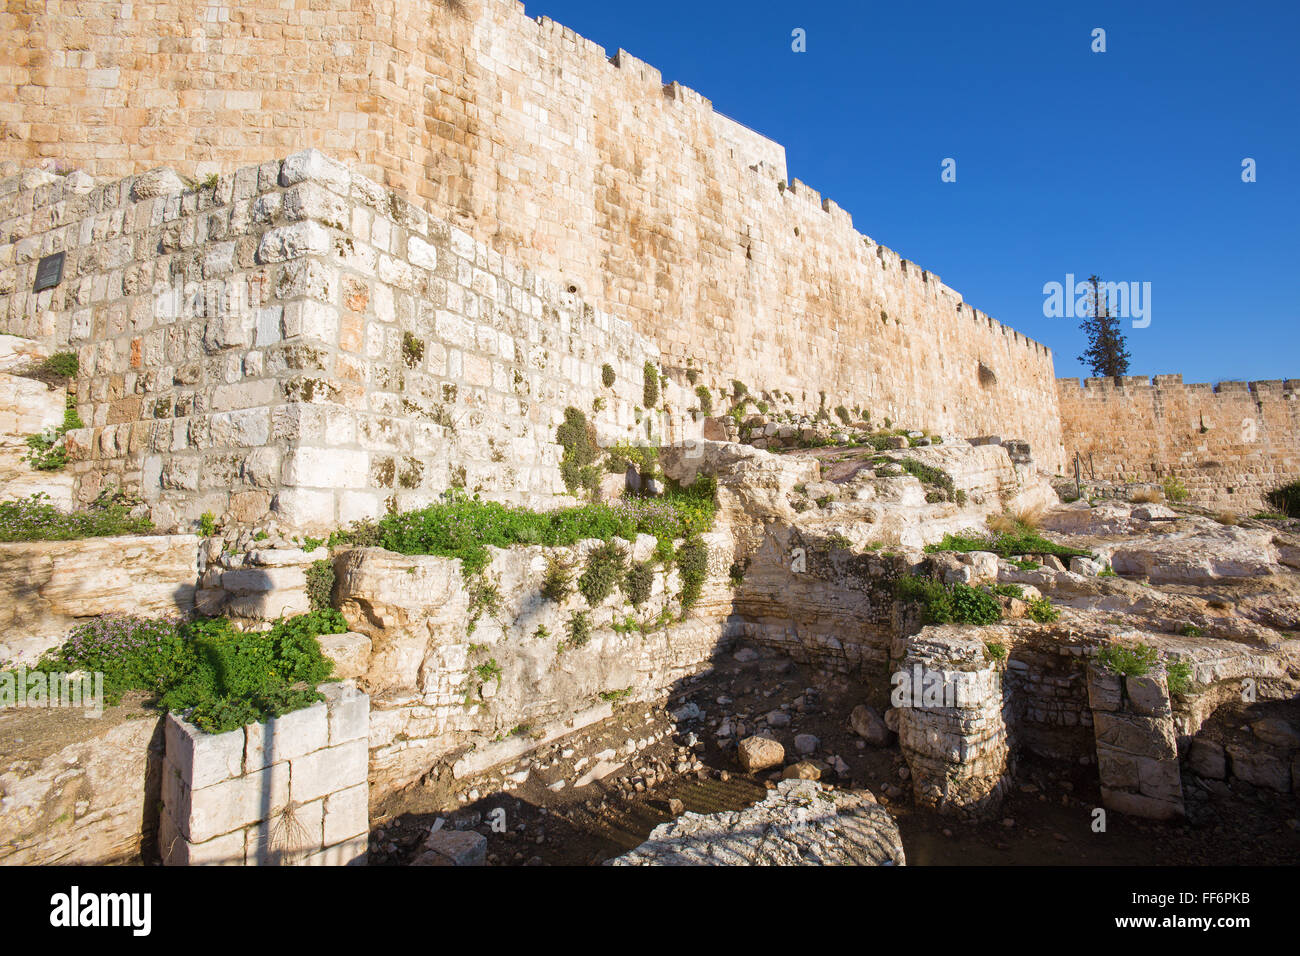 Jerusalem - The south part of town walls and the excavations. - Stock Image